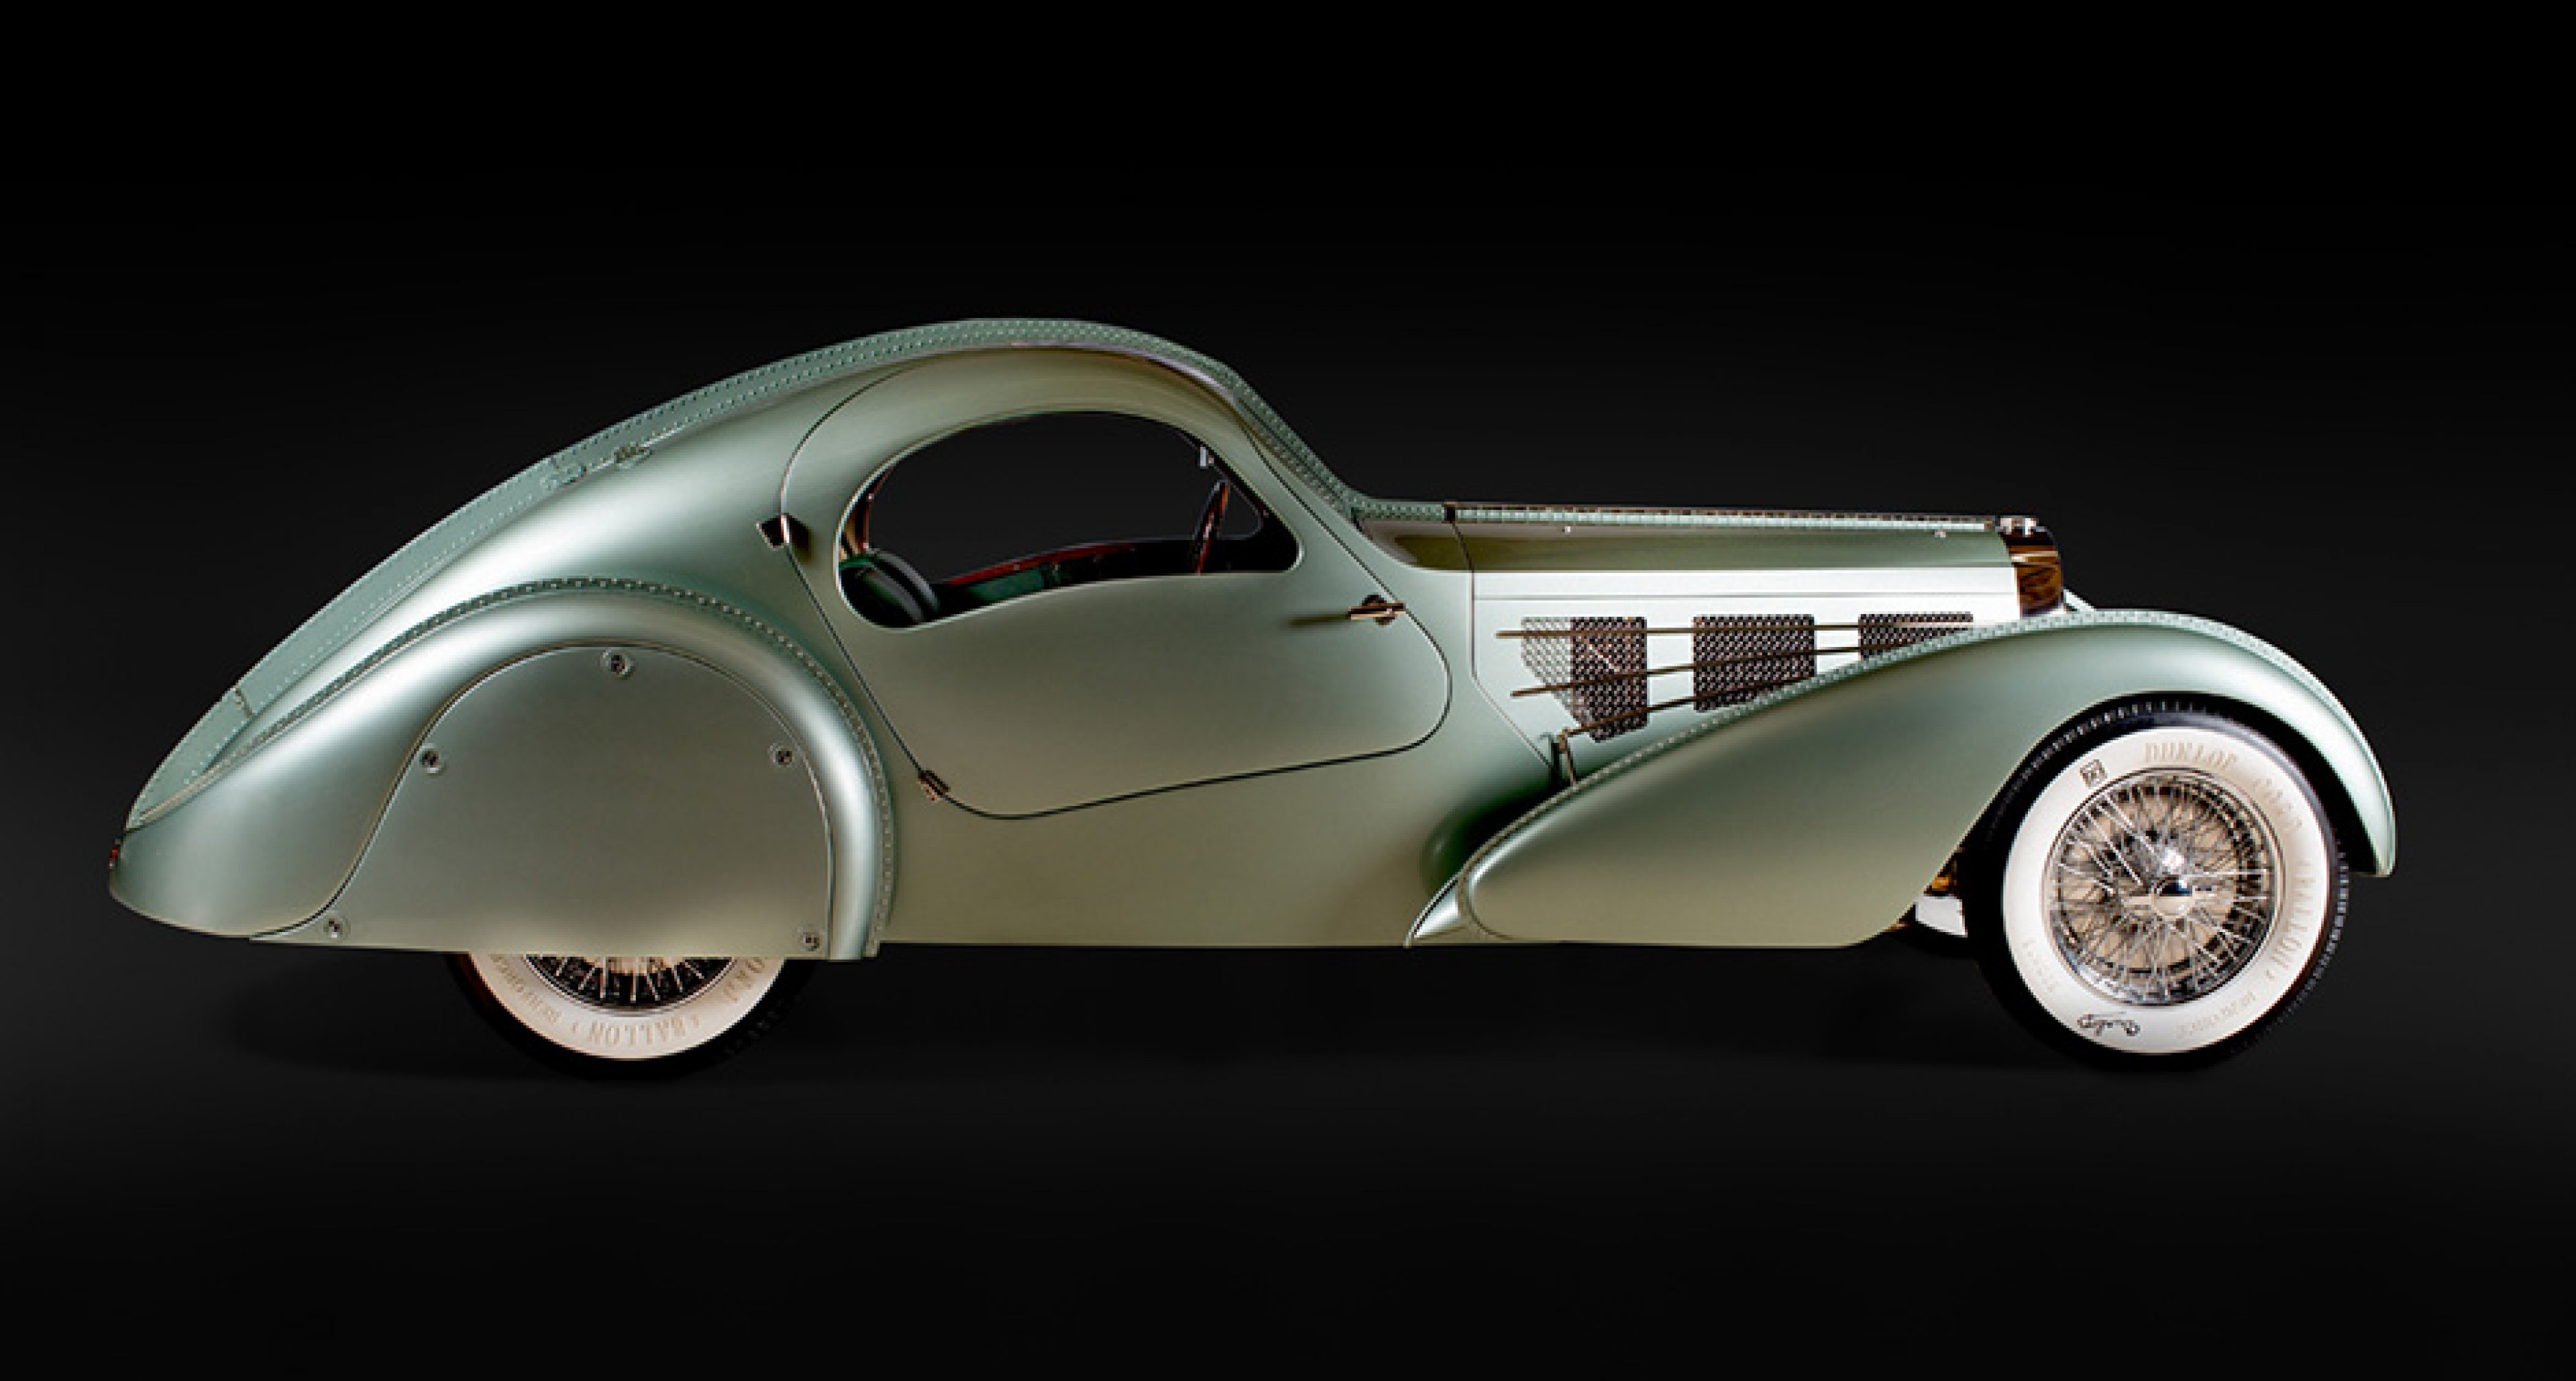 Bugatti Aérolithe, 1935, Courtesy of Chris Ohrstrom; Photo © 2016 Joe Wiecha